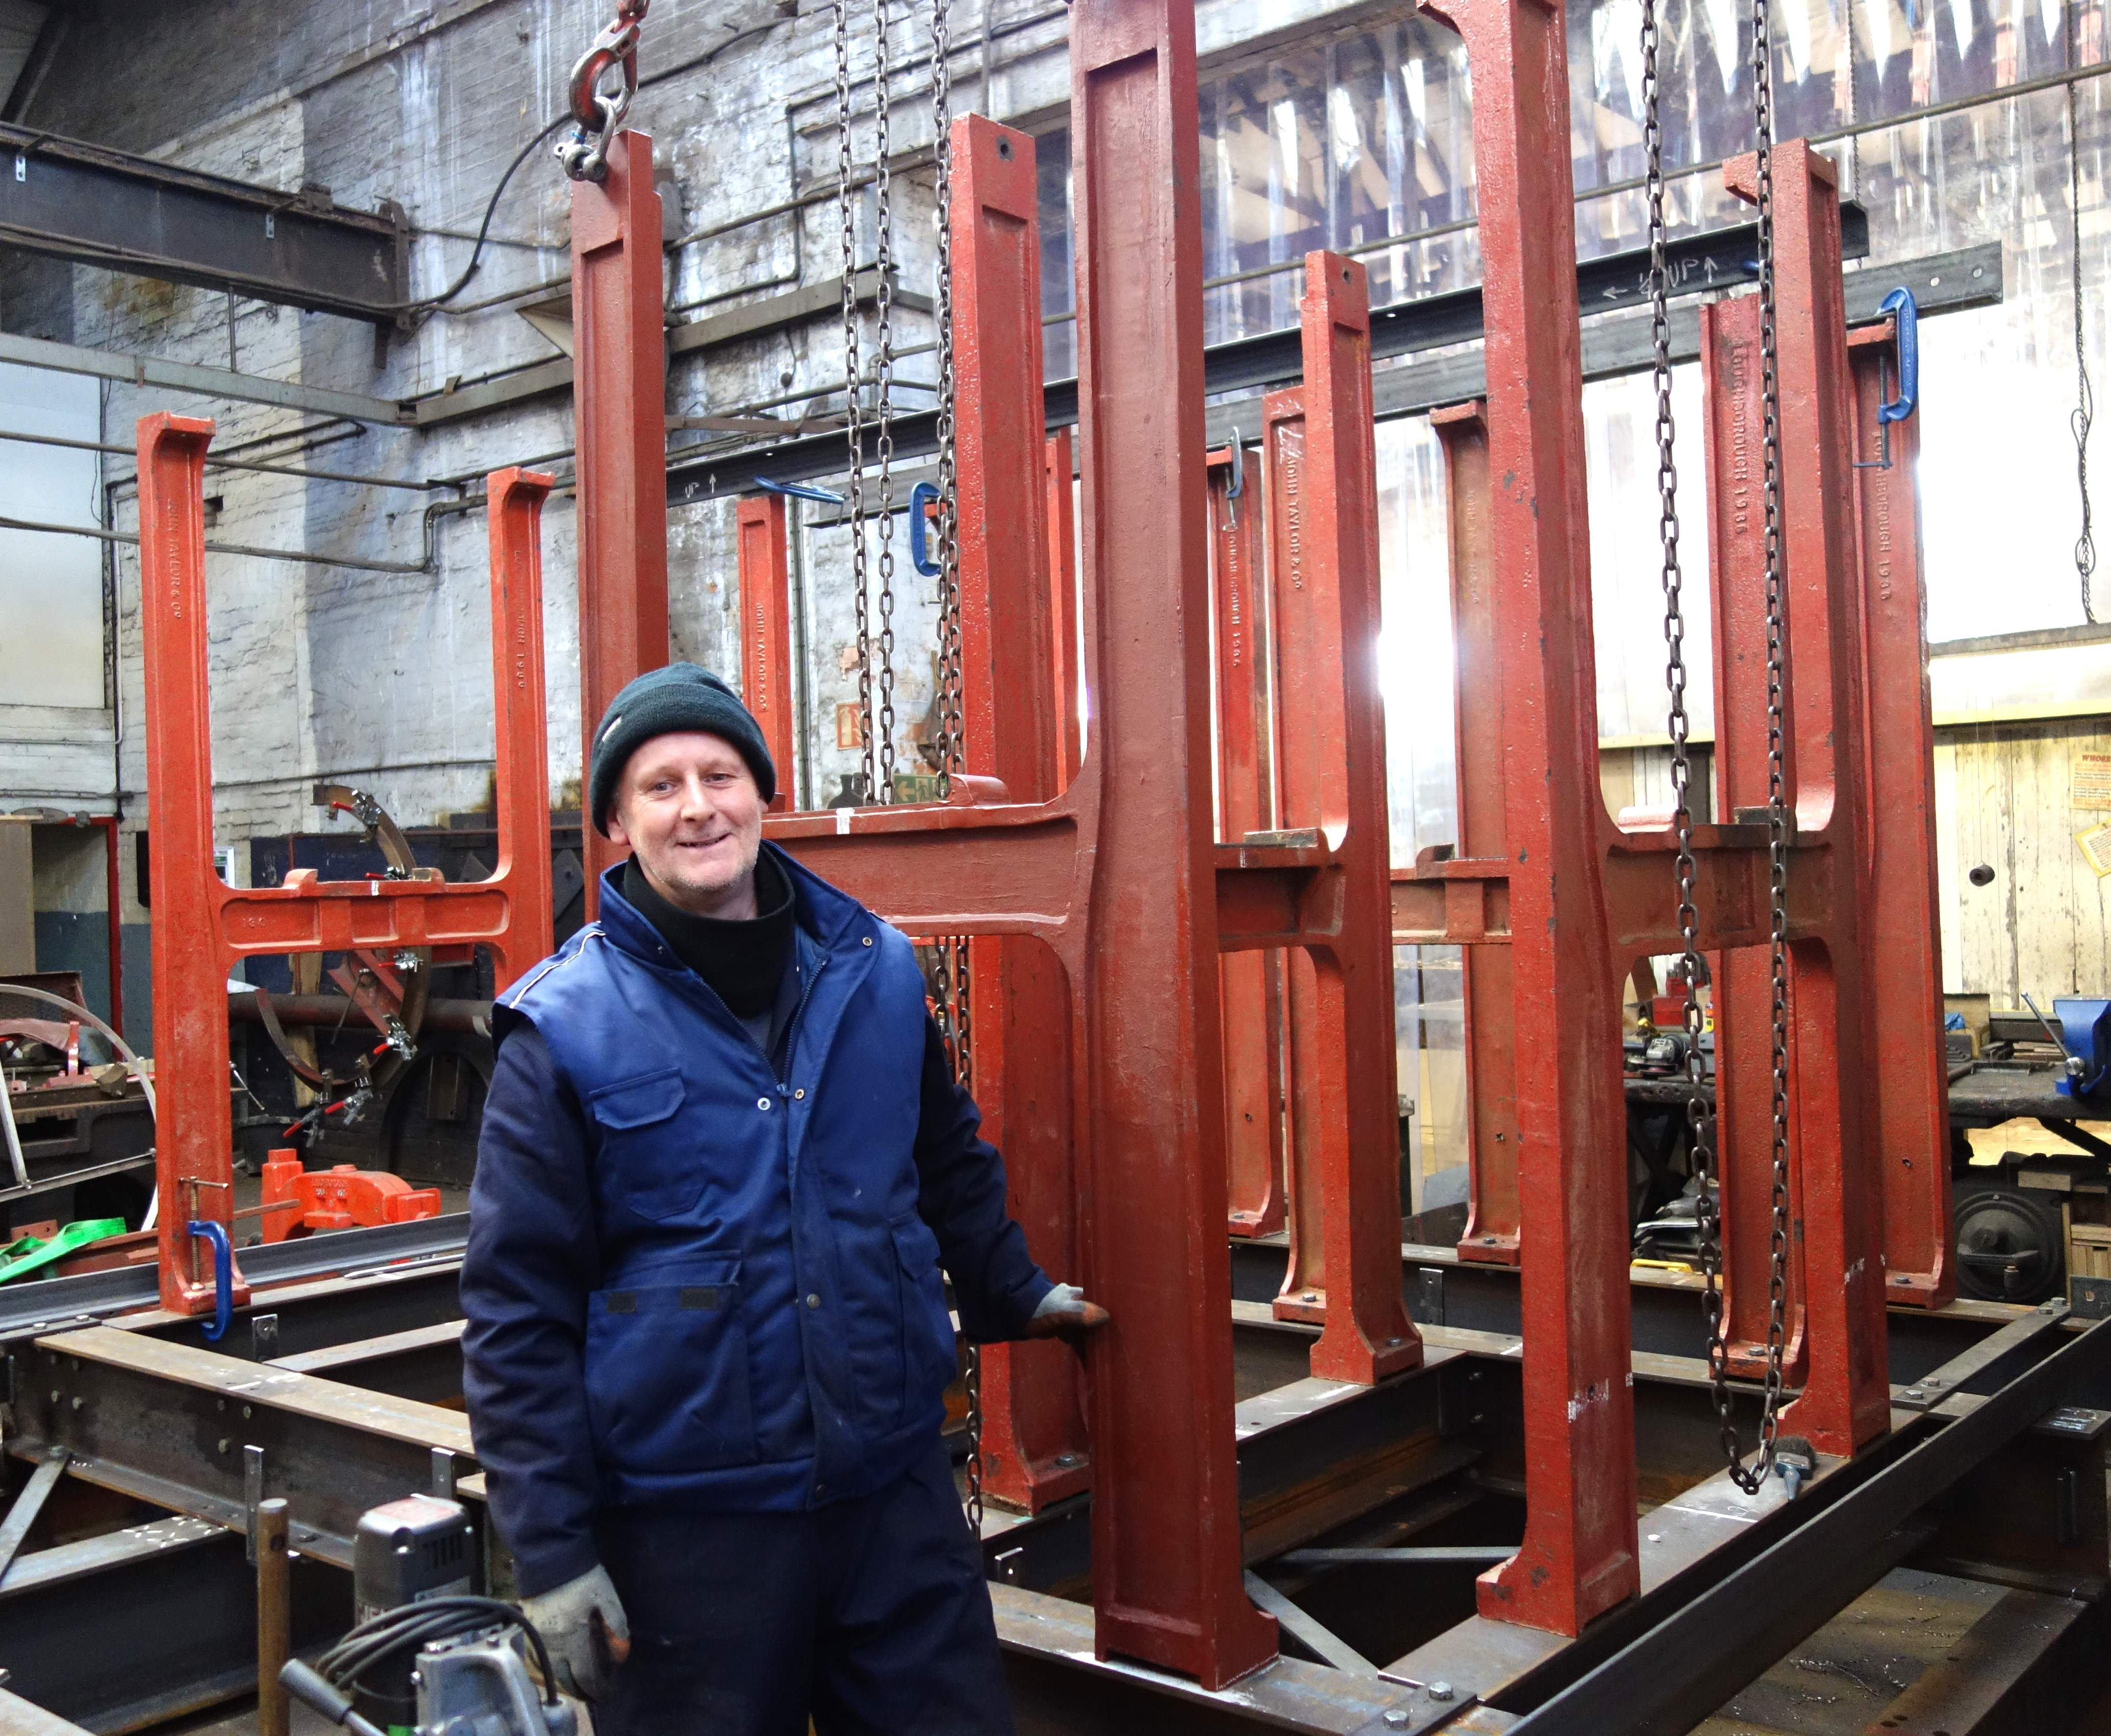 Colin has been building bellframes at Taylor's for more than 40 years.